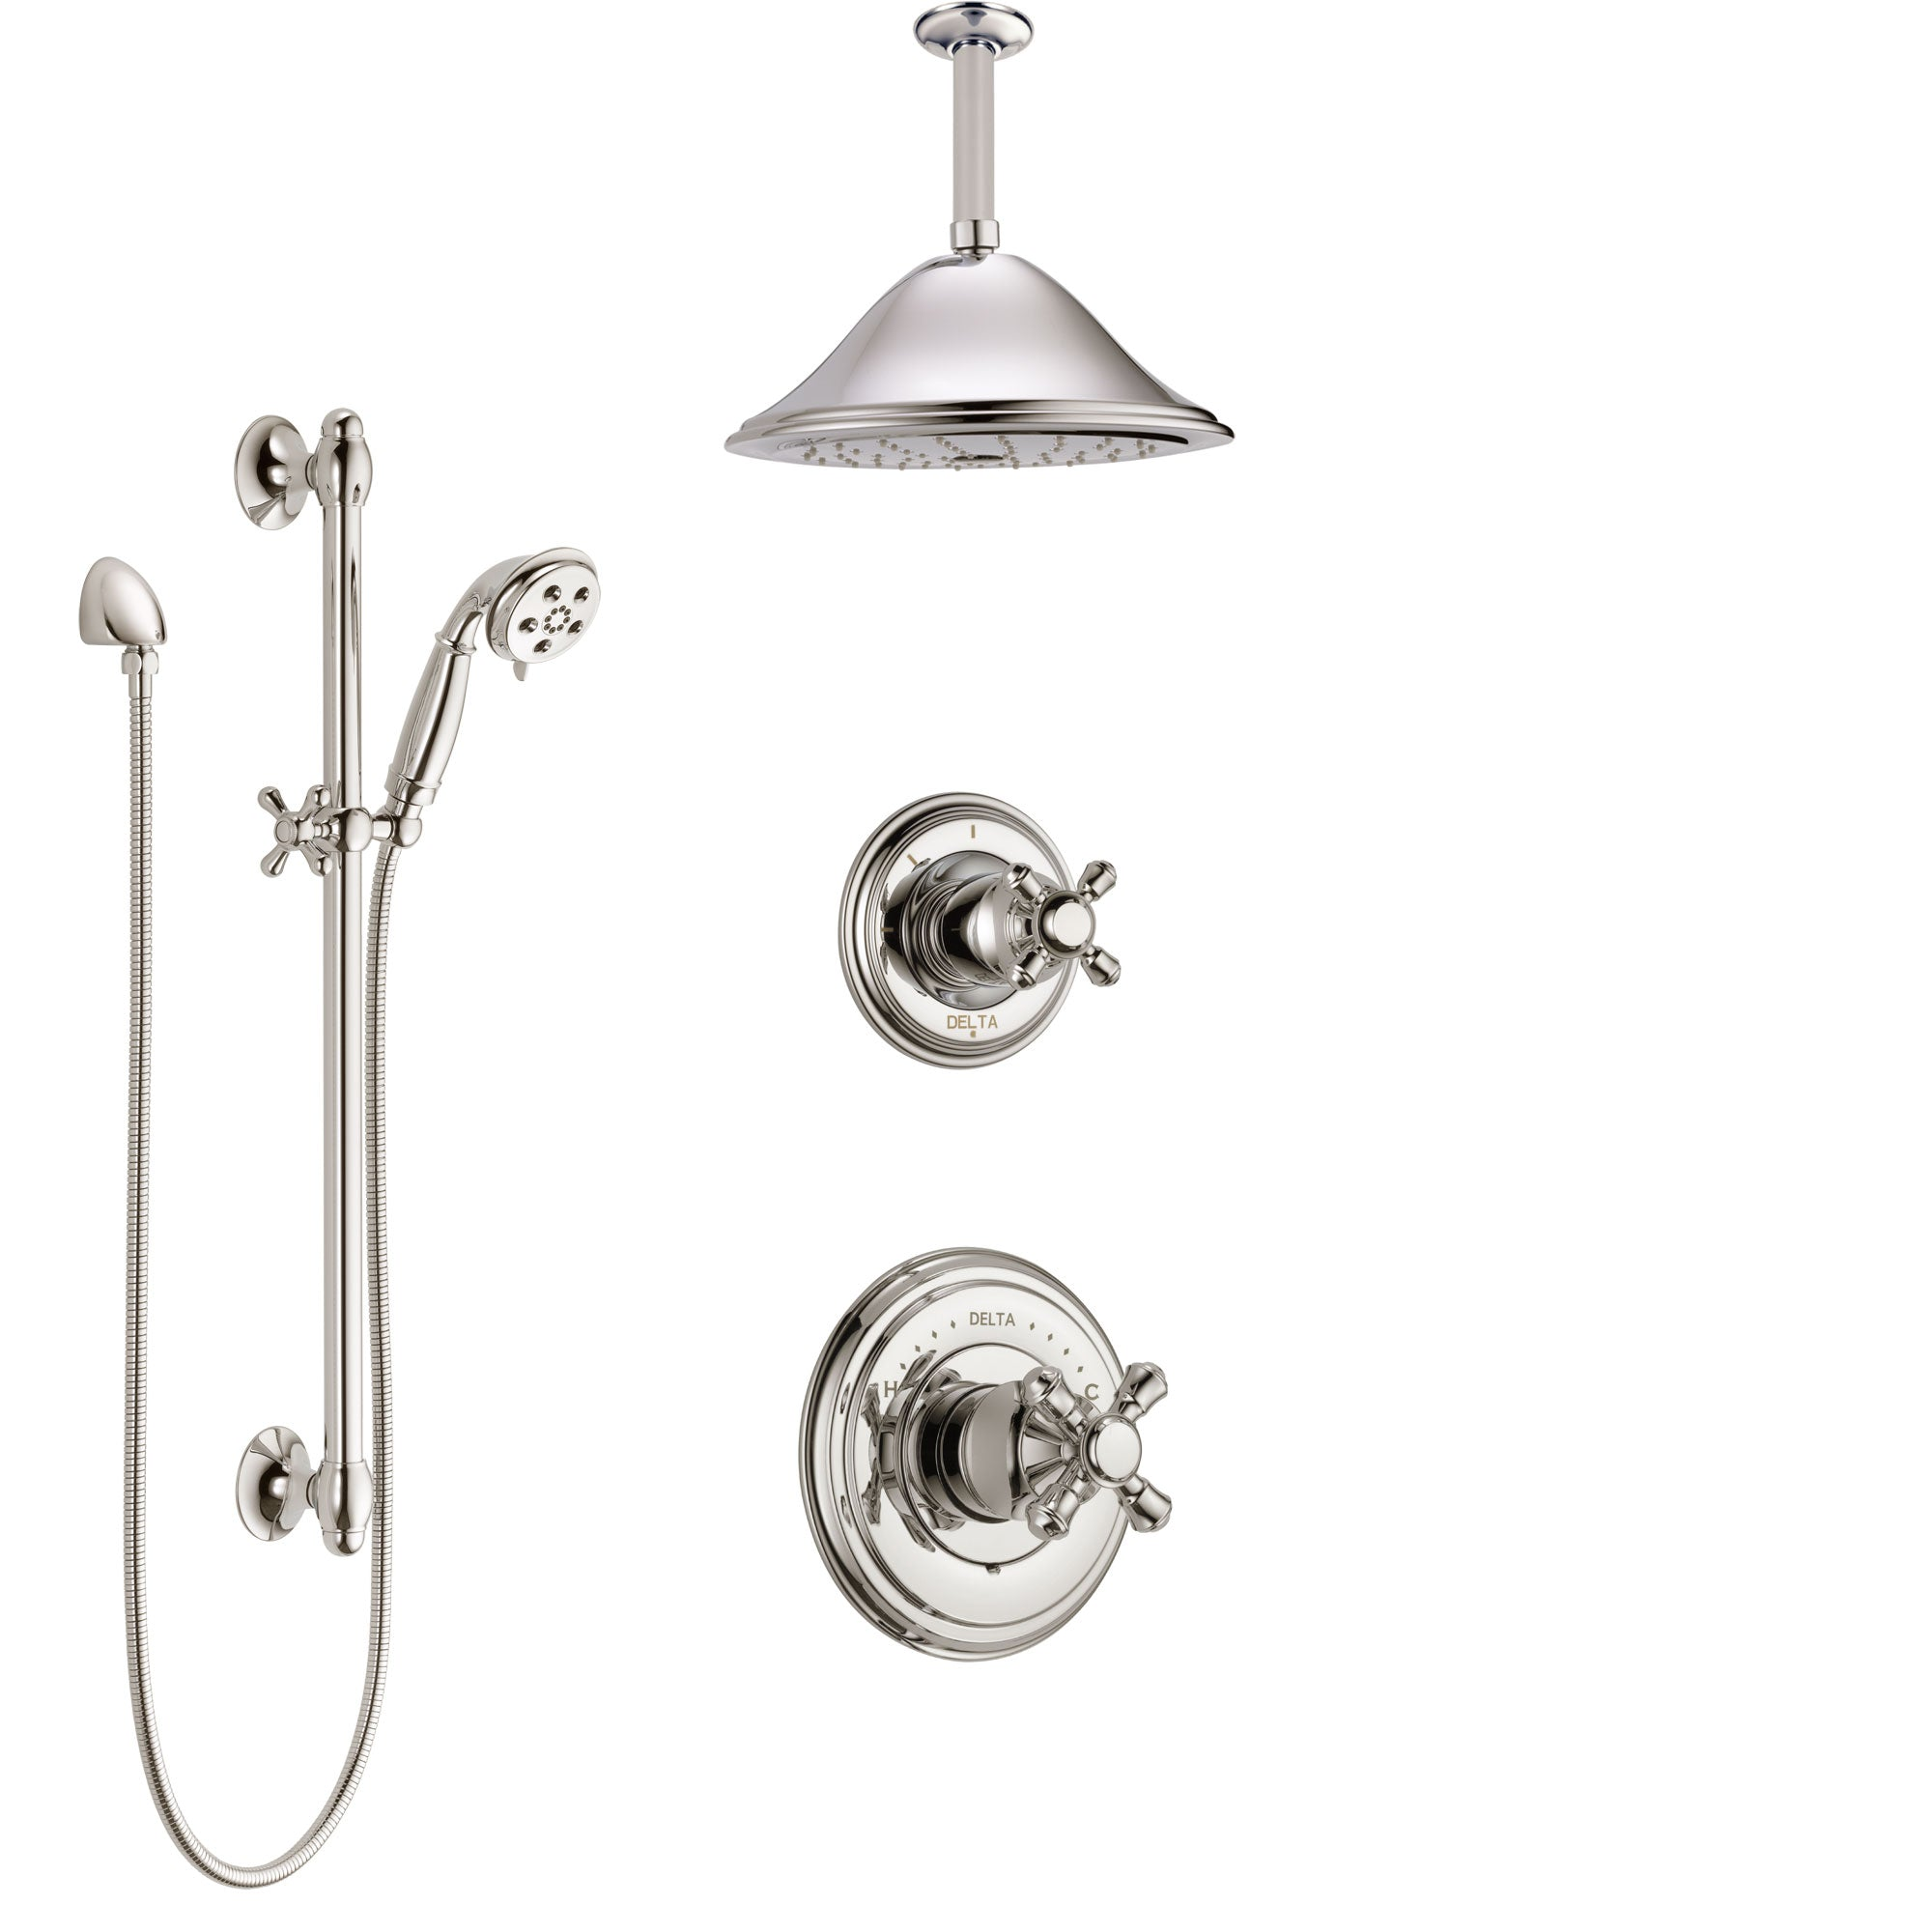 Delta Cassidy Polished Nickel Shower System with Control Handle, Diverter, Ceiling Mount Showerhead, and Hand Shower with Slidebar SS14971PN3